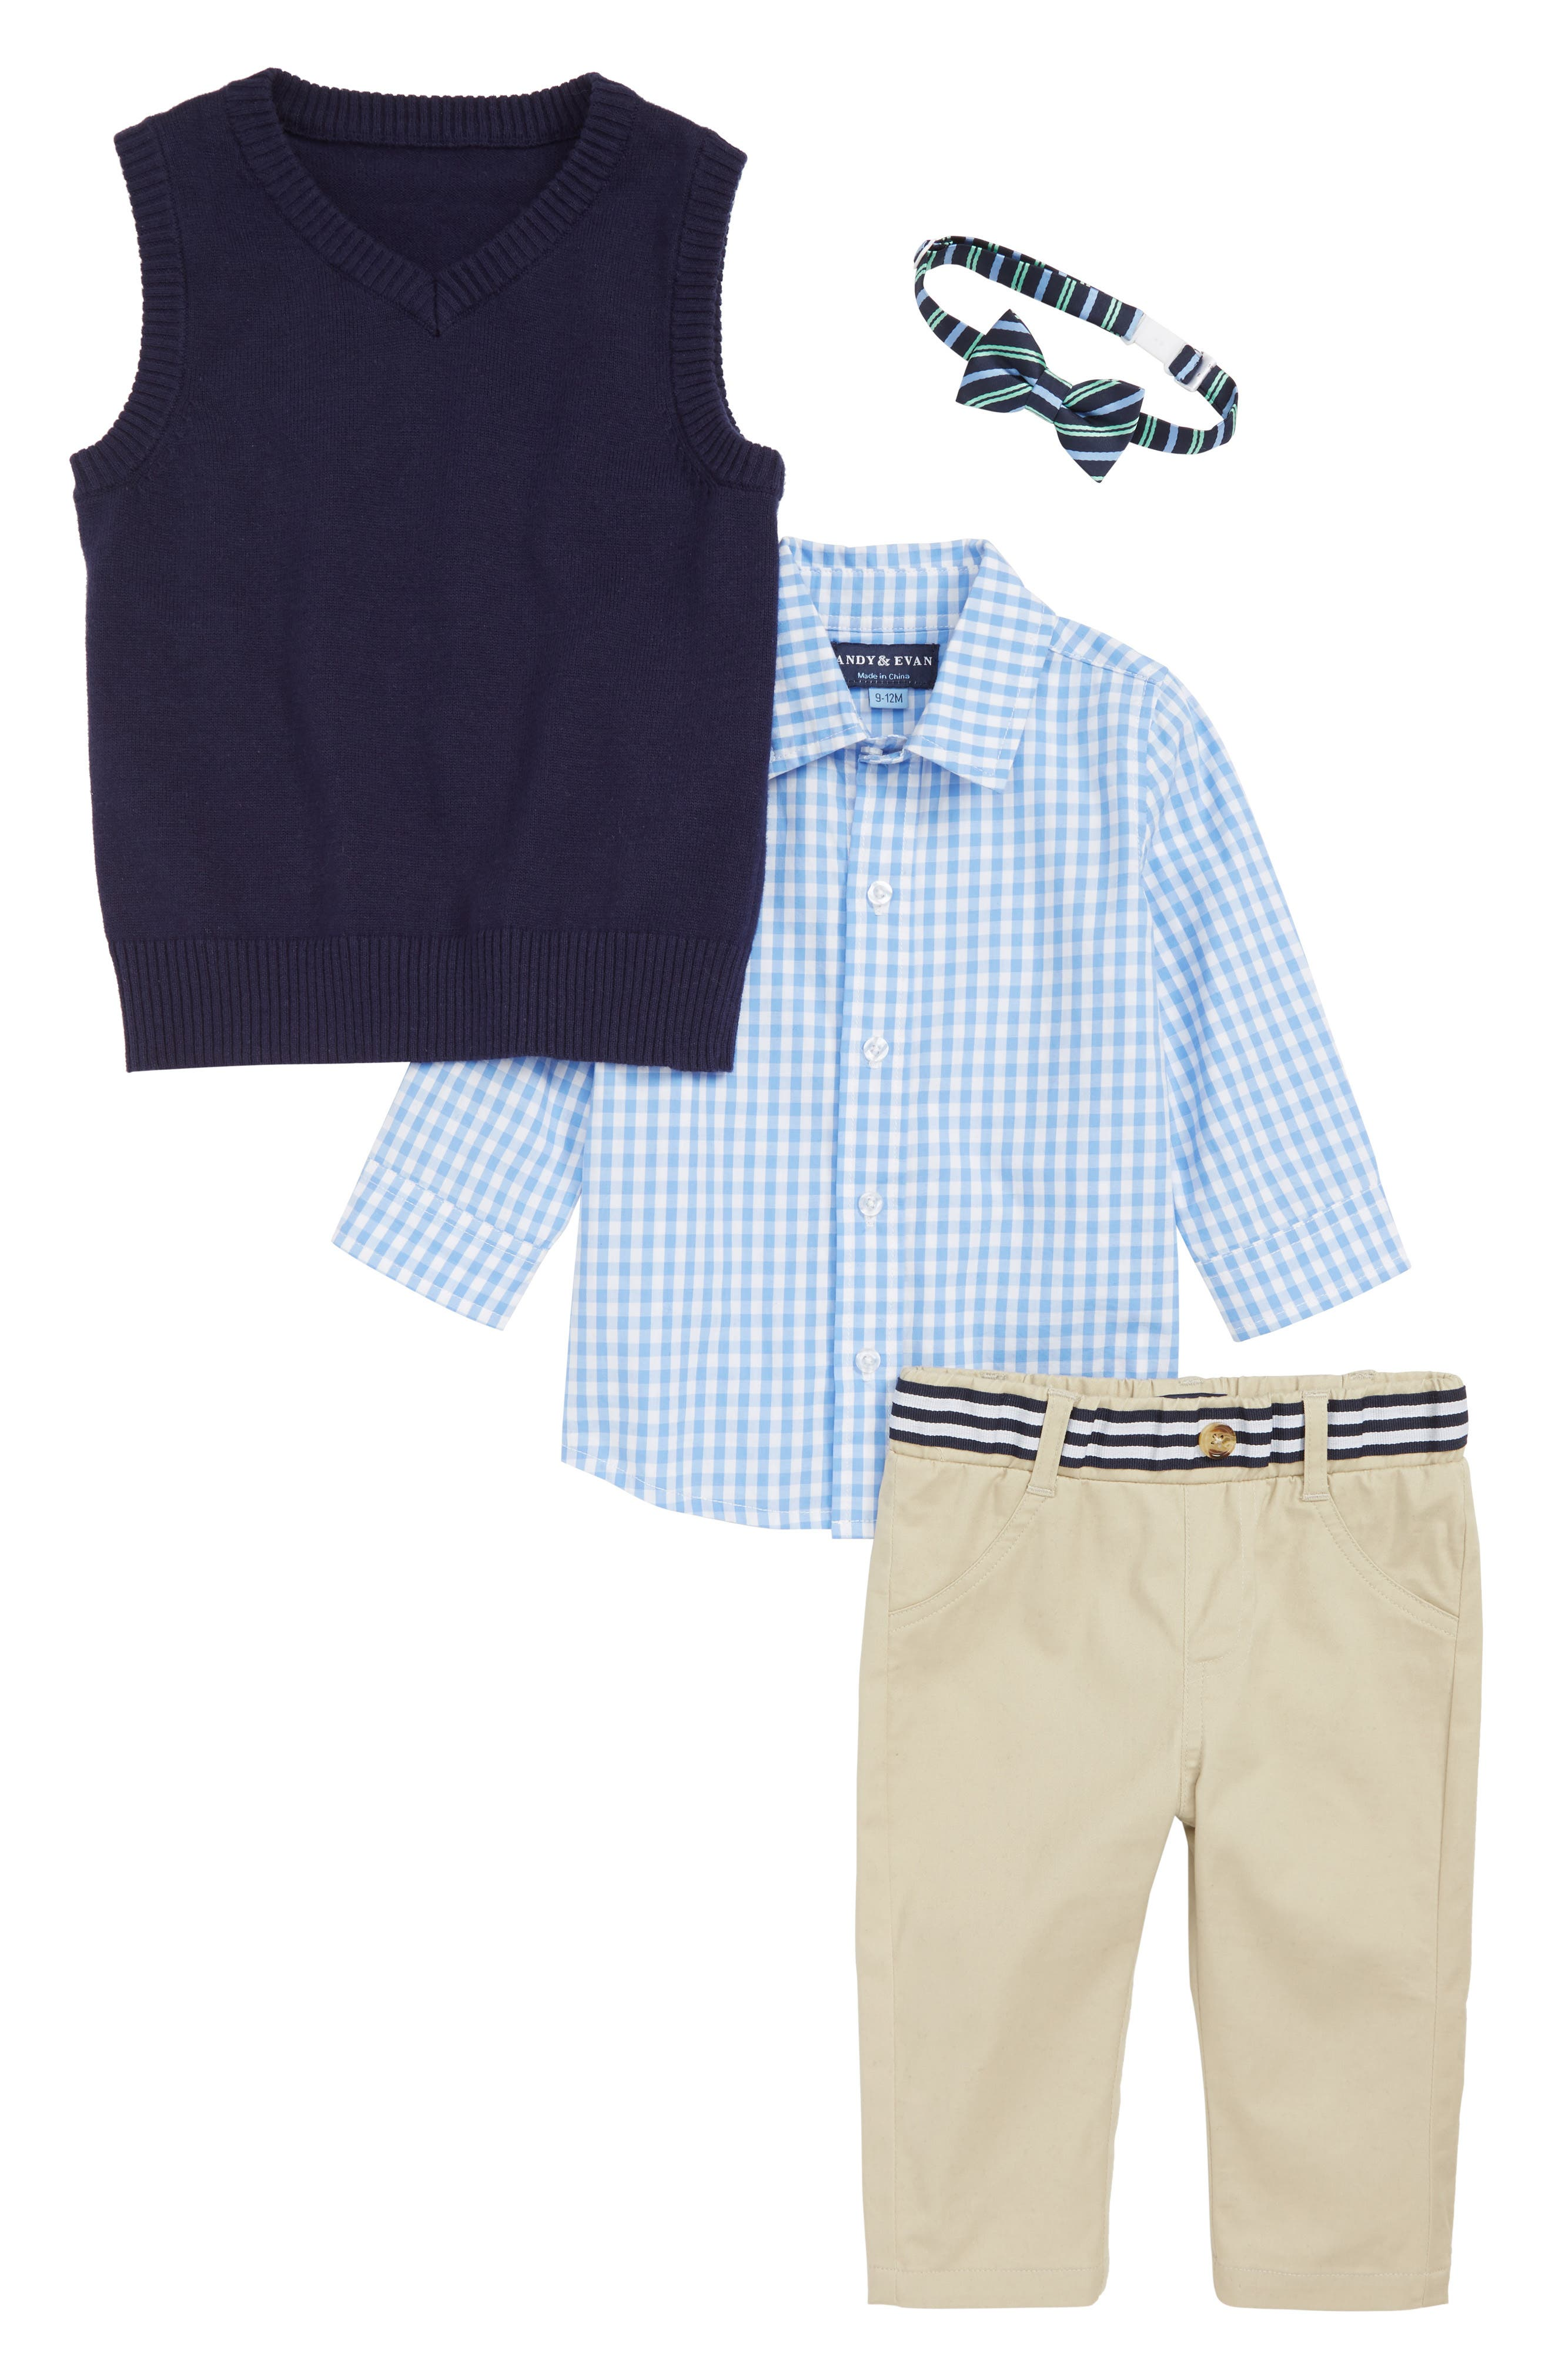 ANDY & EVAN, Shirt Bow Tie, Sweater & Pants Set, Main thumbnail 1, color, NVM-NAVY